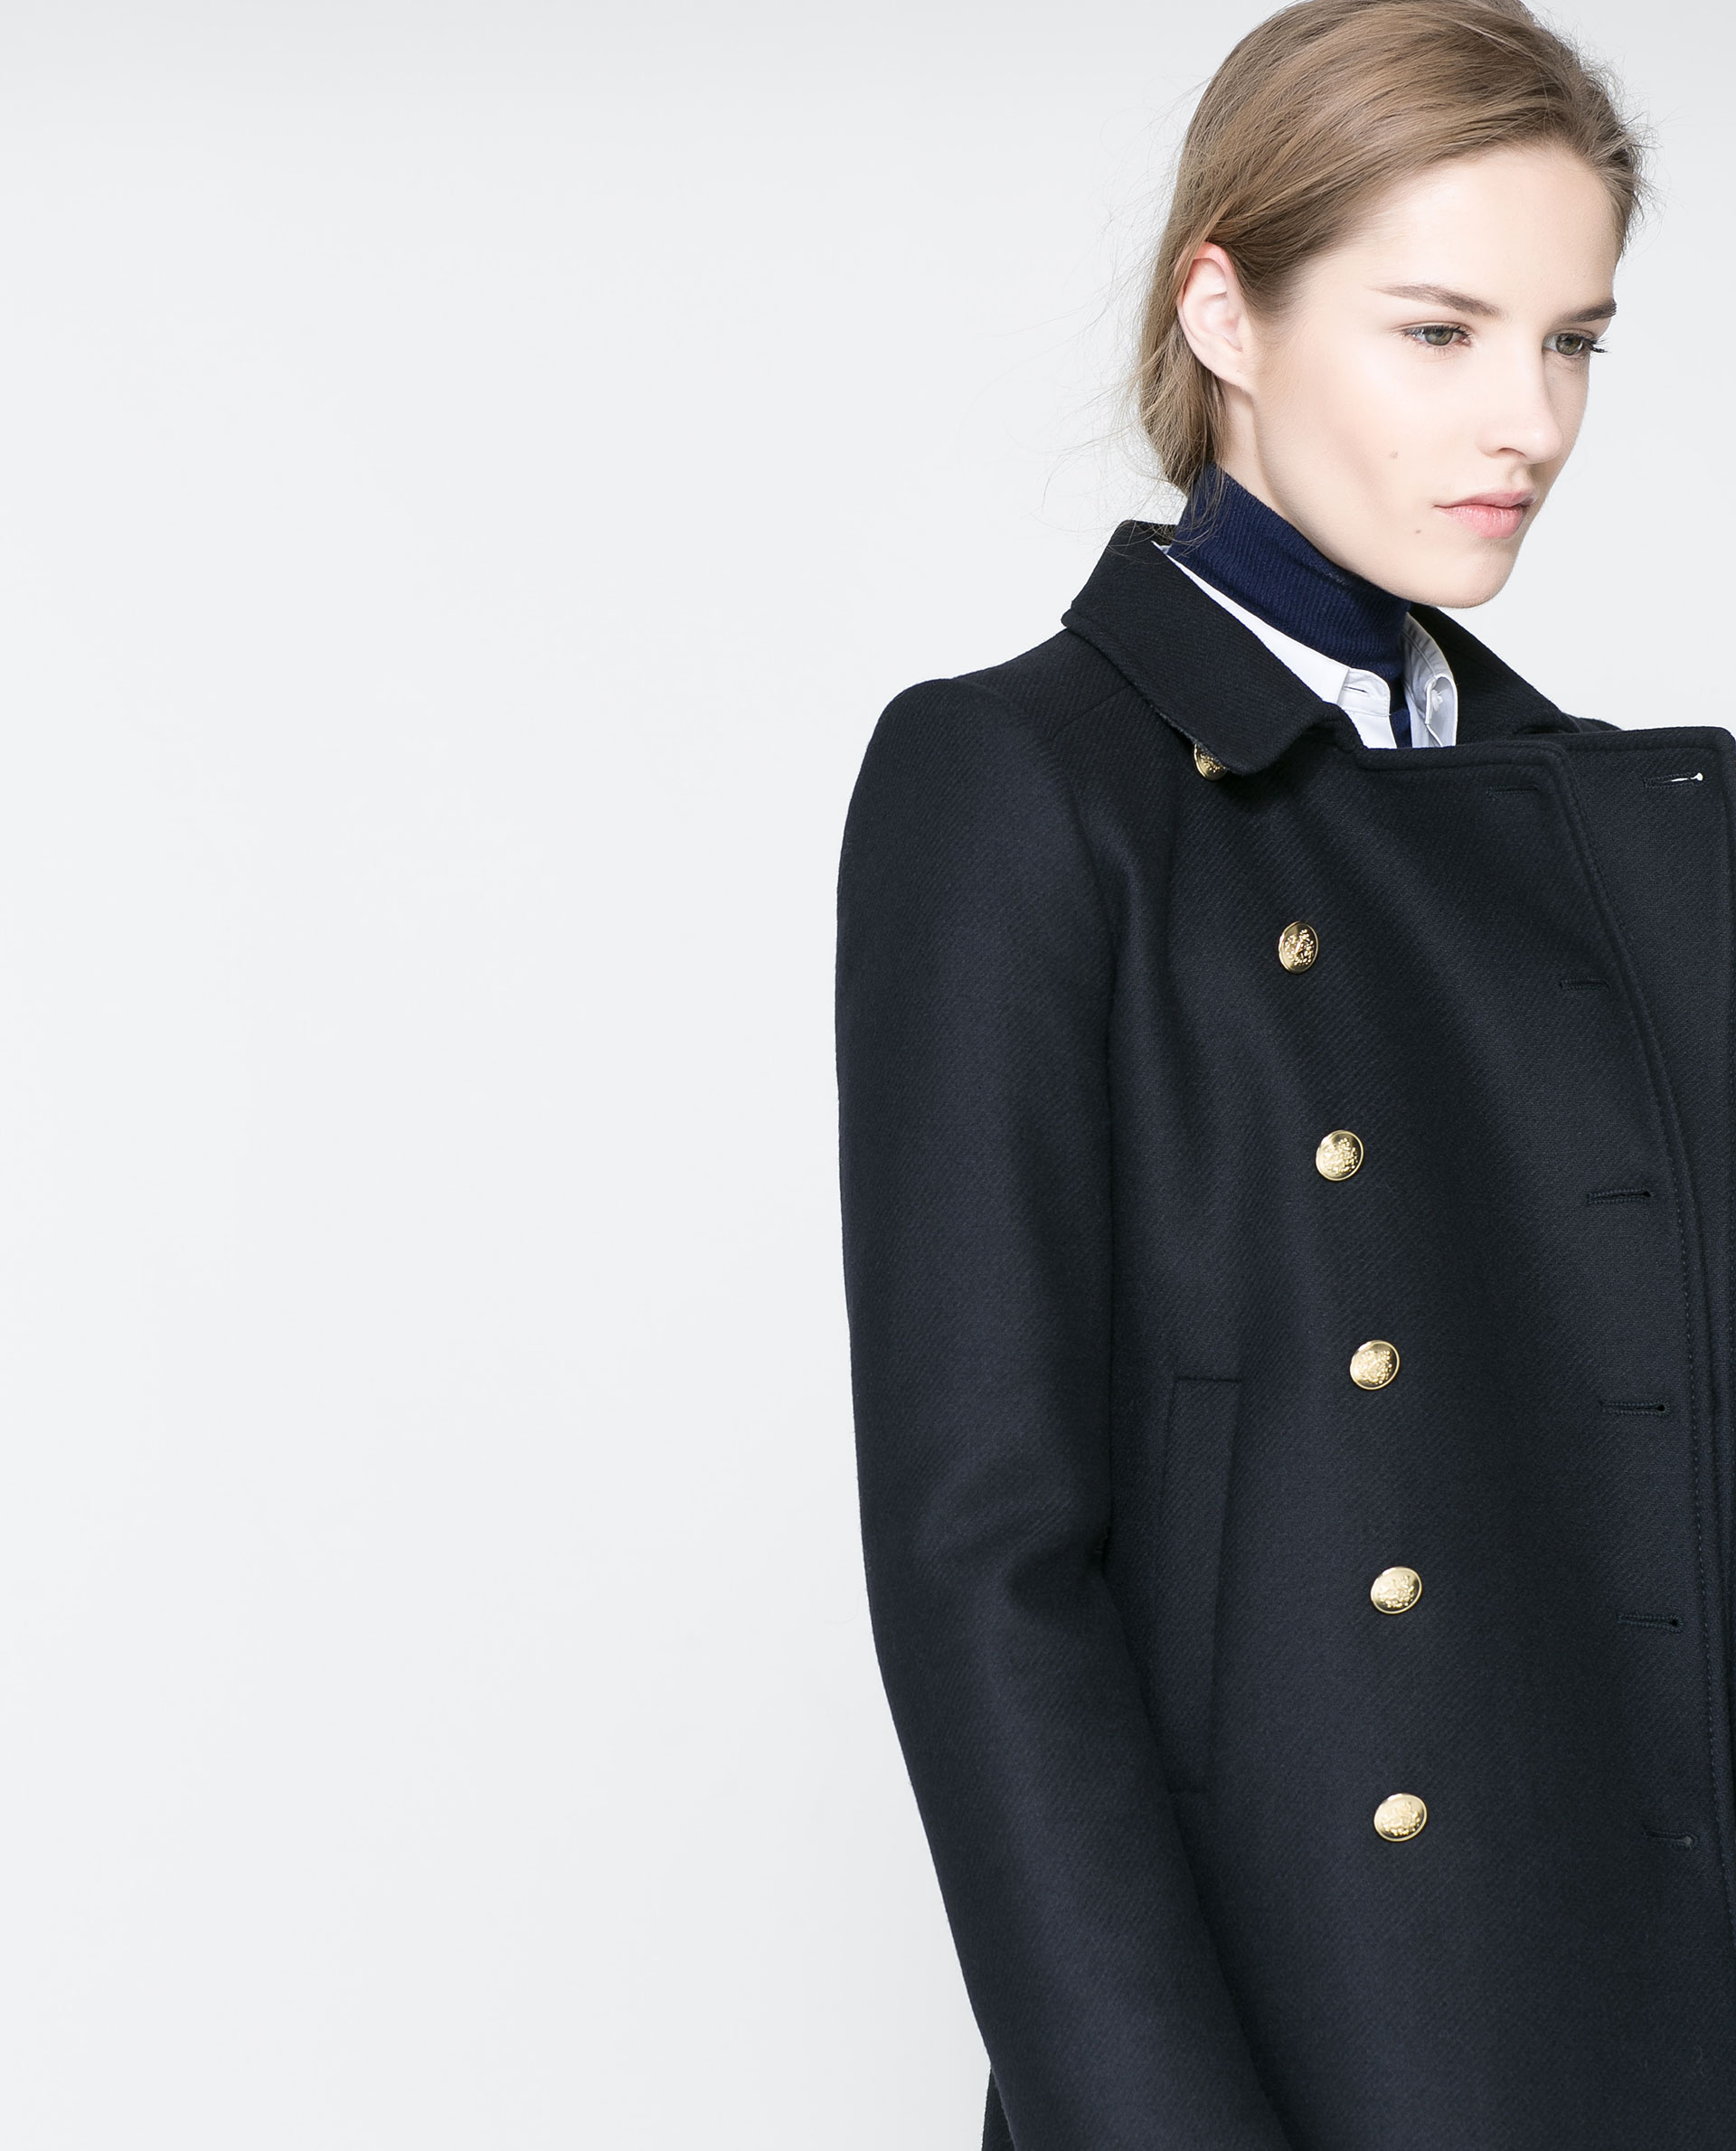 Zara navy women's coat